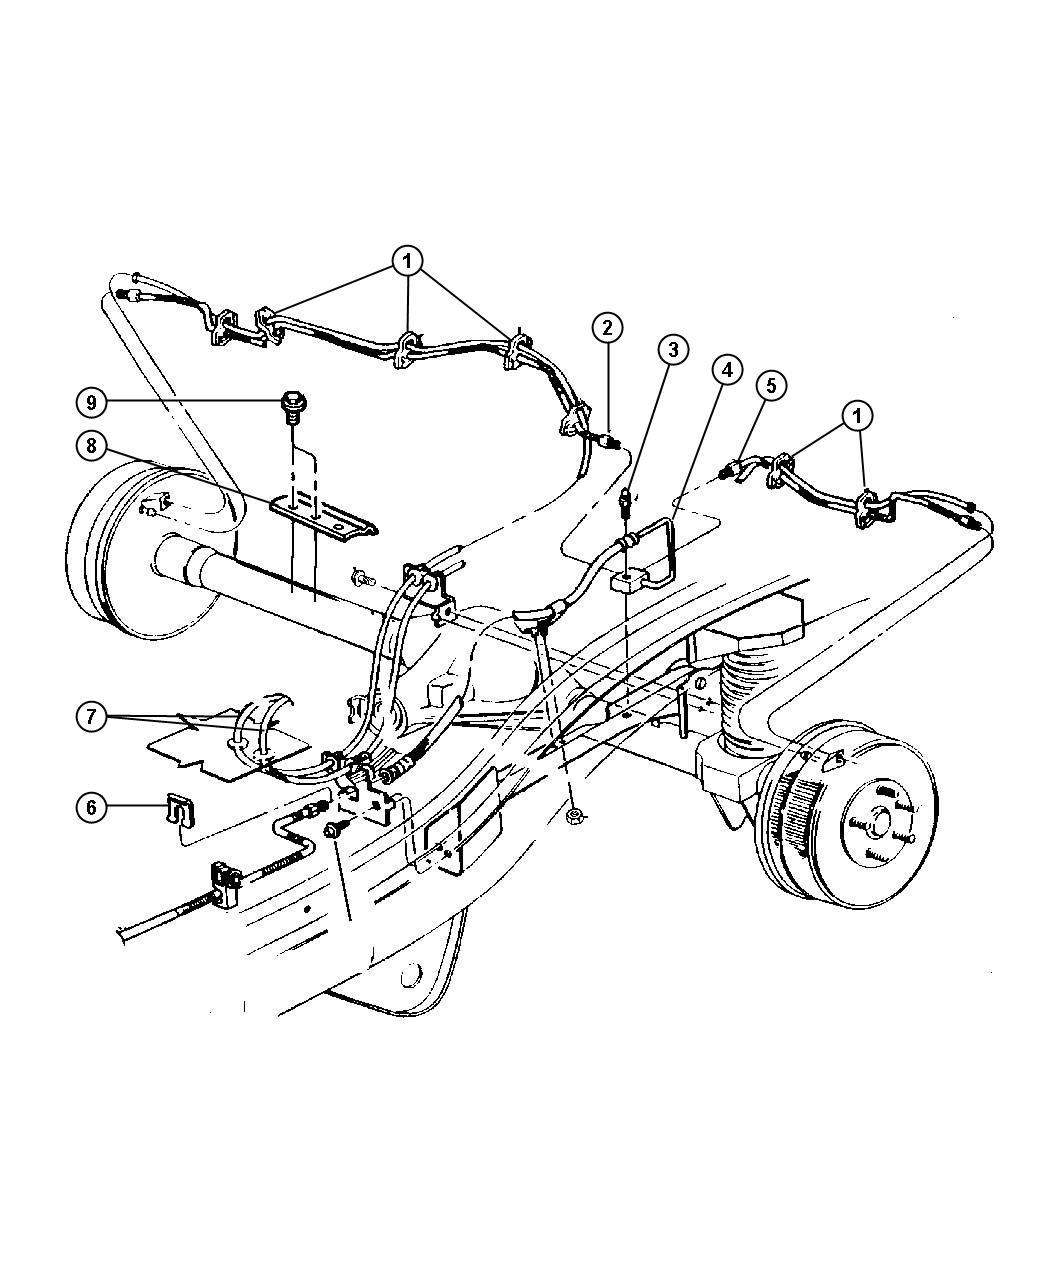 Wiring Diagram For A 2001 Dodge Ram on 2005 dodge viper wiring diagram